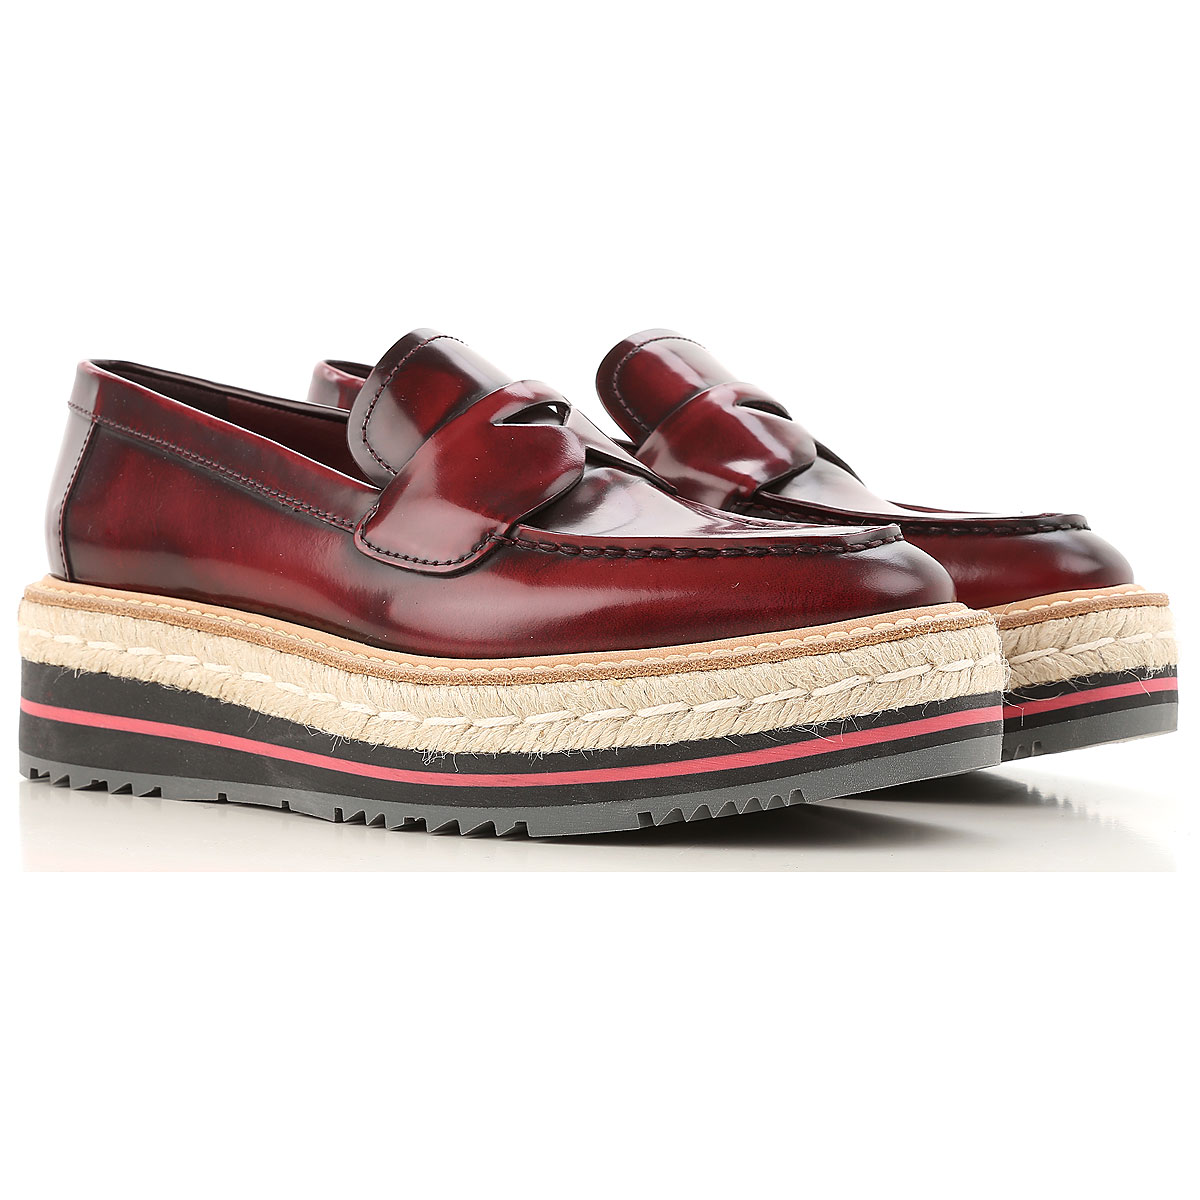 Prada Loafers for Women in Outlet Scarlet Red USA - GOOFASH